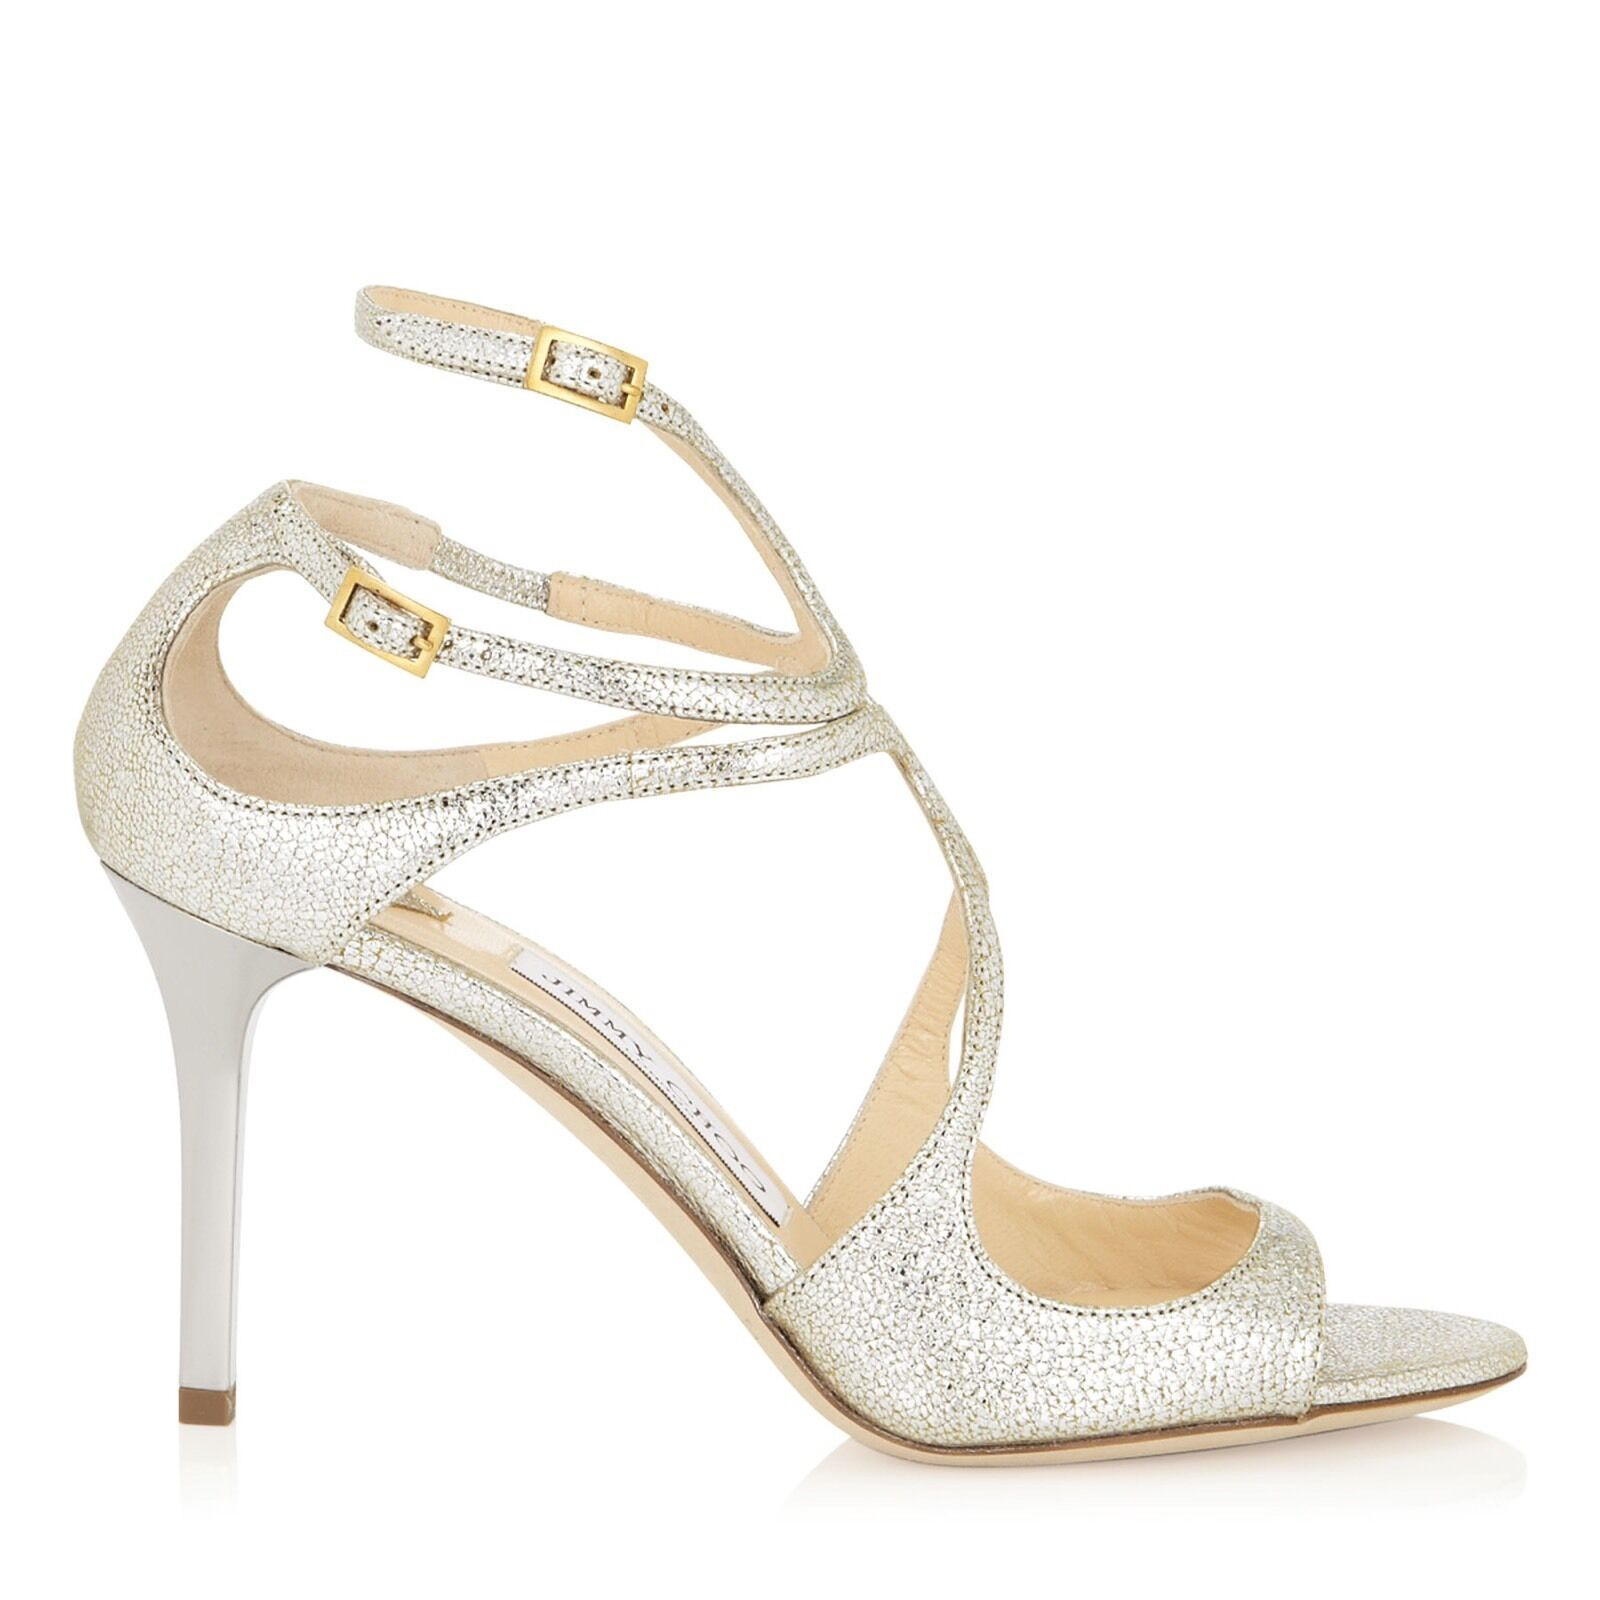 JIMMY CHOO 'ivette' Silver Champagne SANDALS HEELS STRAPPY Size UK 1 Eu 34